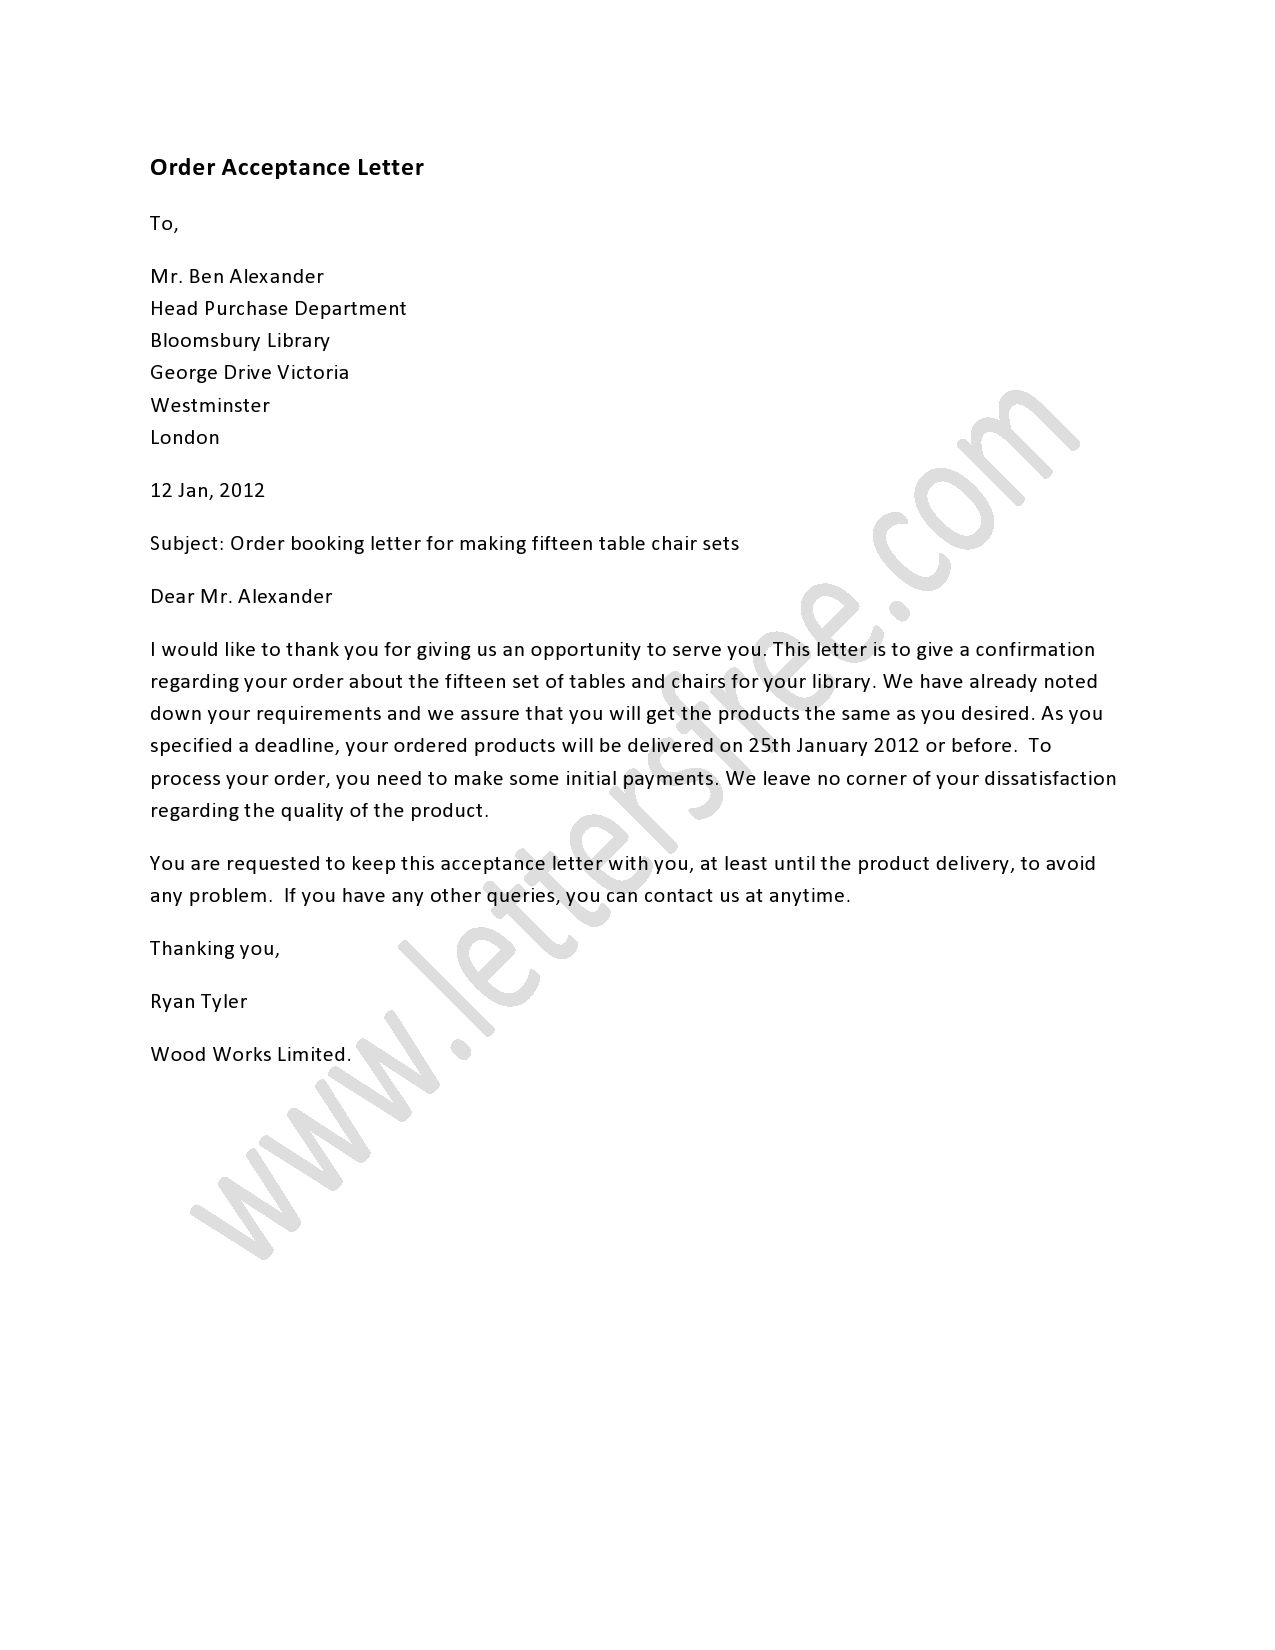 An order acceptance letter is written to inform a company about – Purchase Order Letter Template